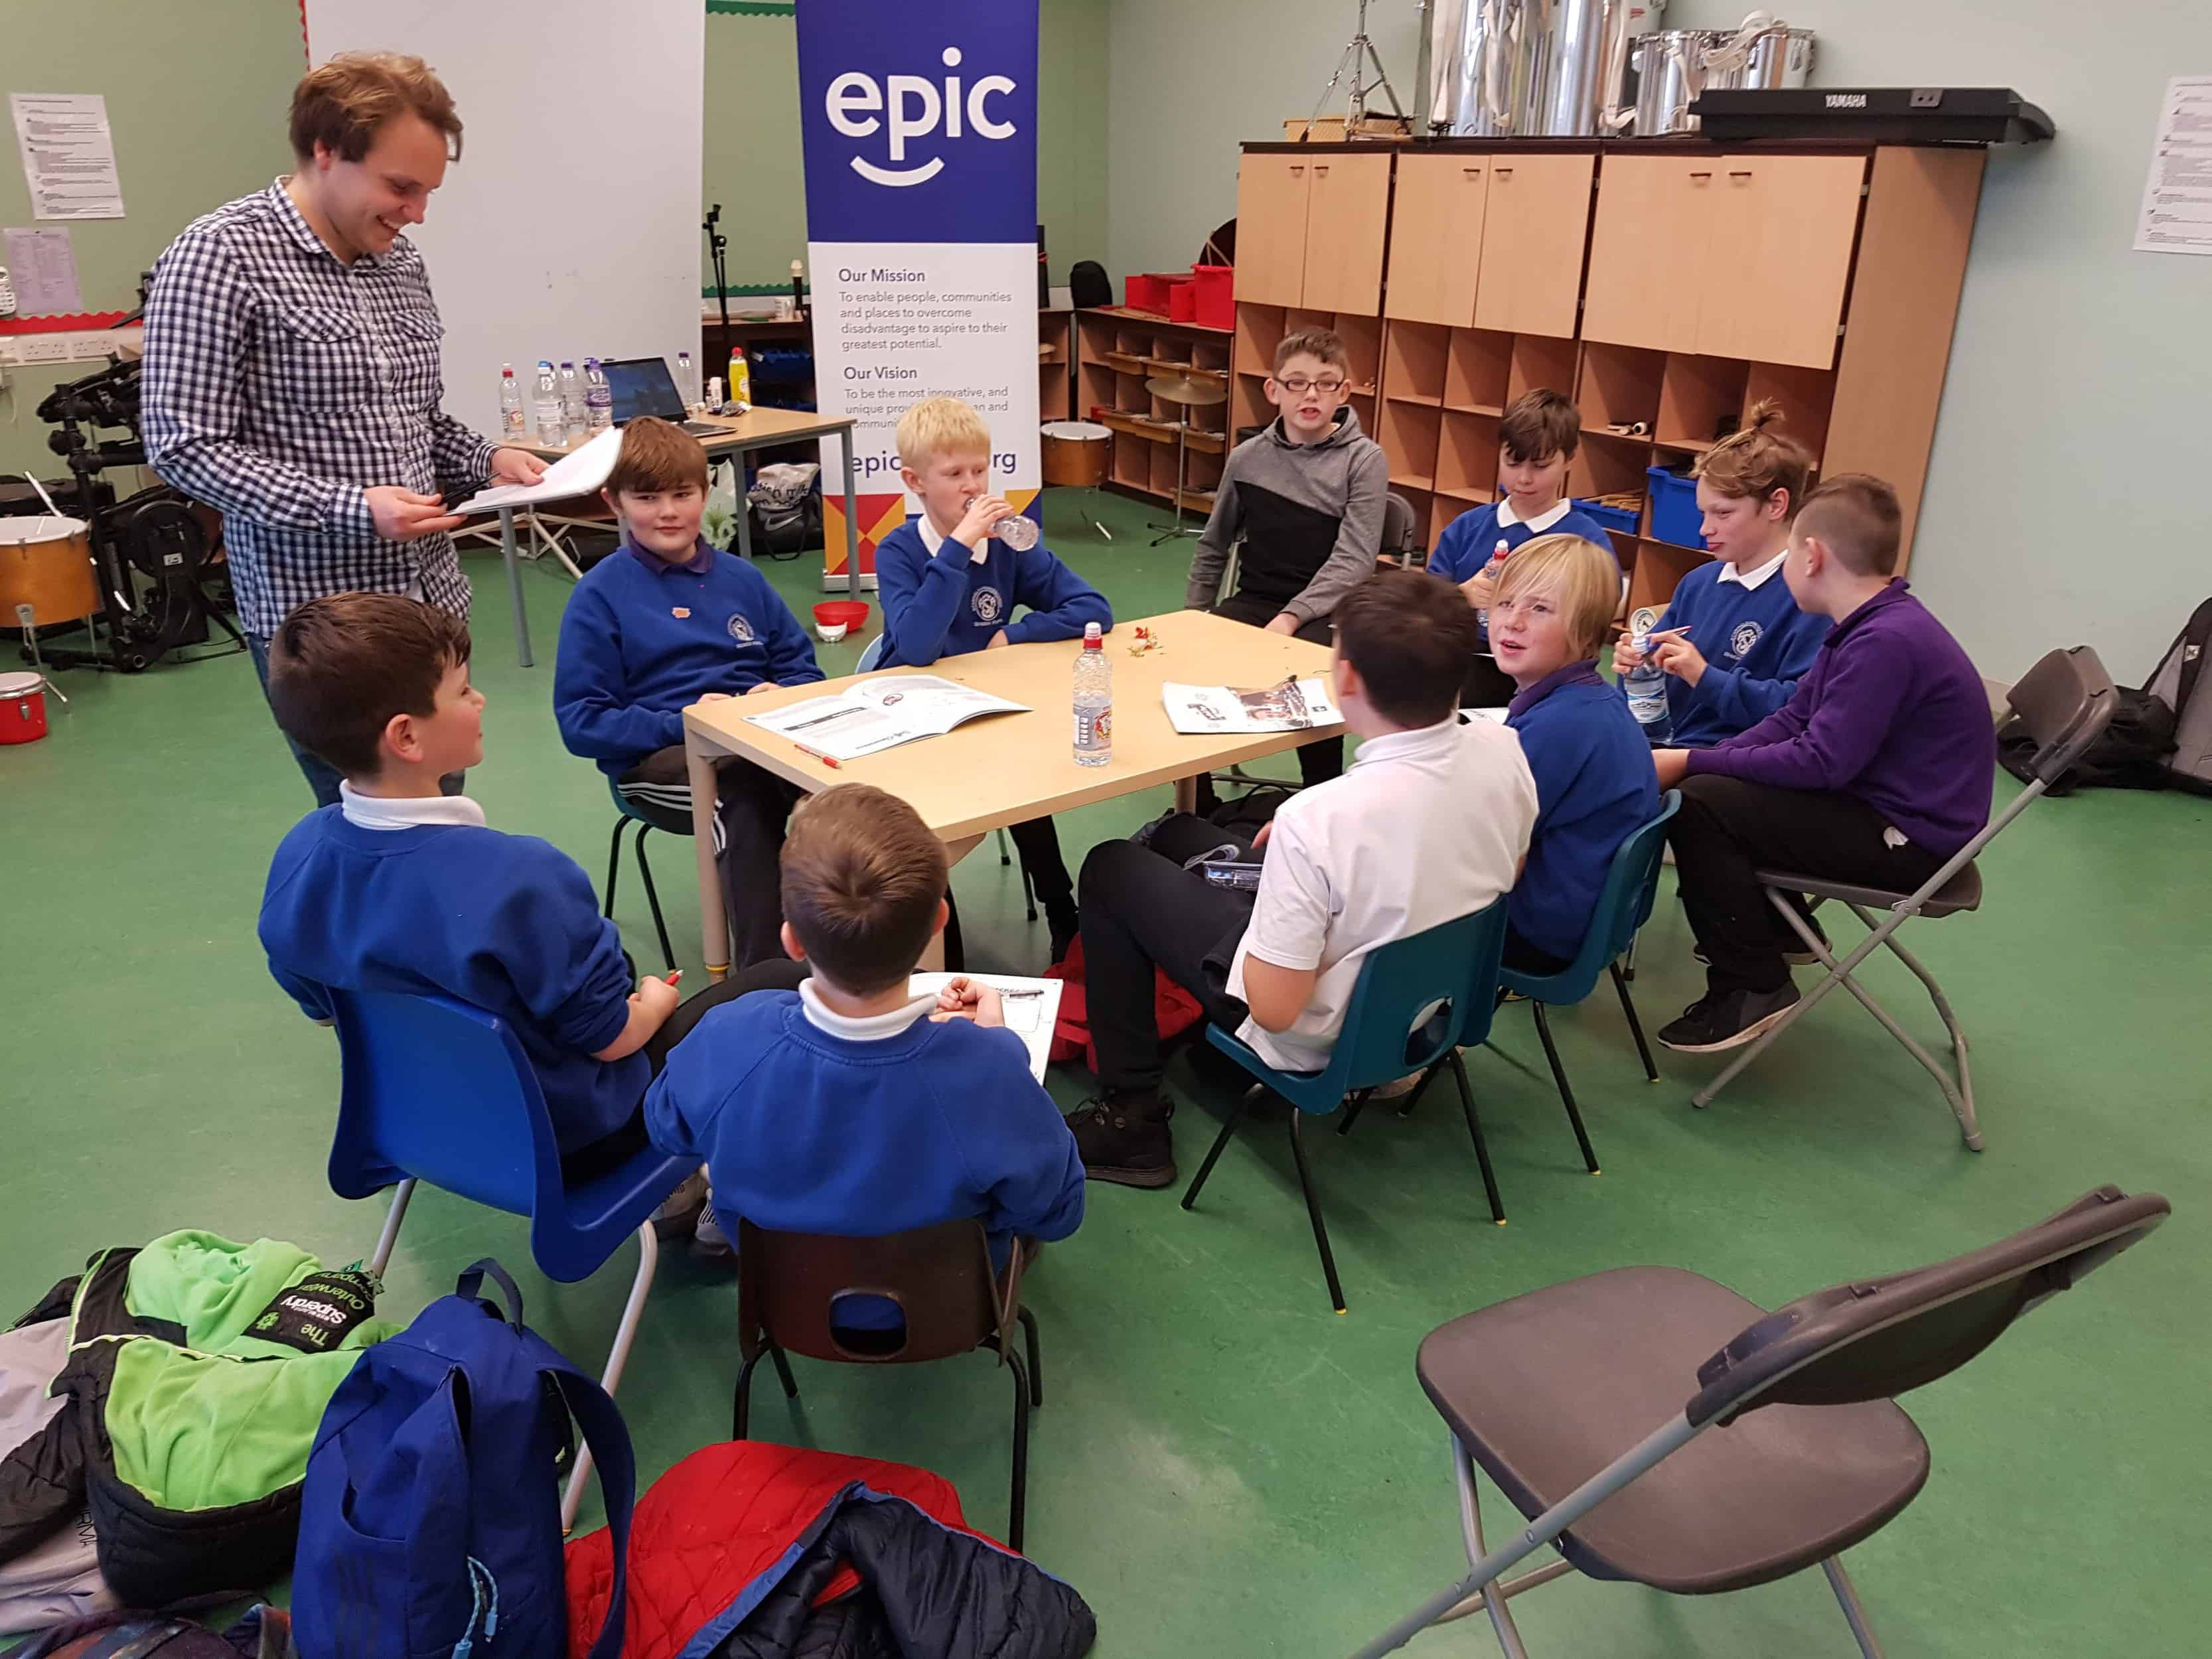 A group of boys from the Tranent Boys Project sit around a table working through booklets.